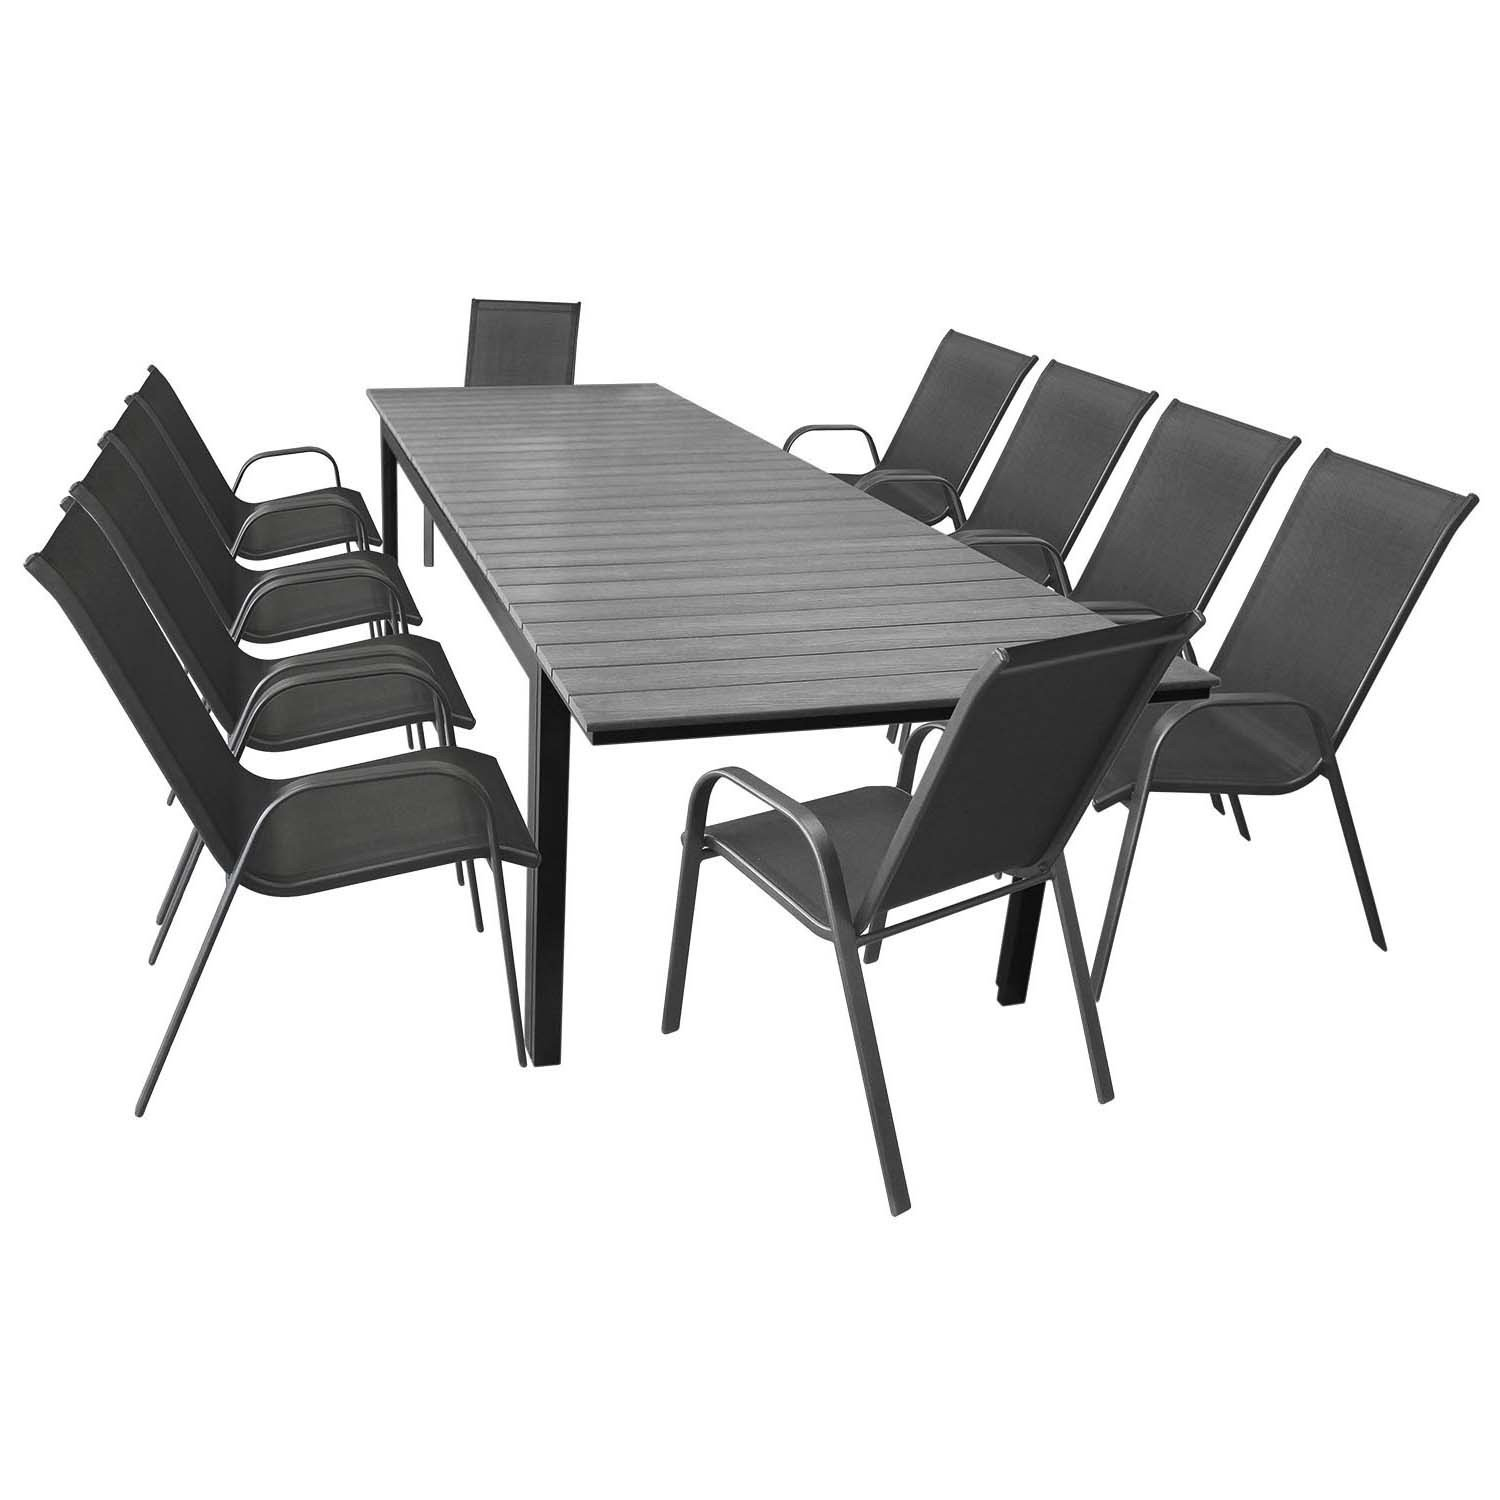 11tlg terrassenm bel set gartentisch ausziehbar aluminium polywood 280 220x95cm 10 stapelbare. Black Bedroom Furniture Sets. Home Design Ideas